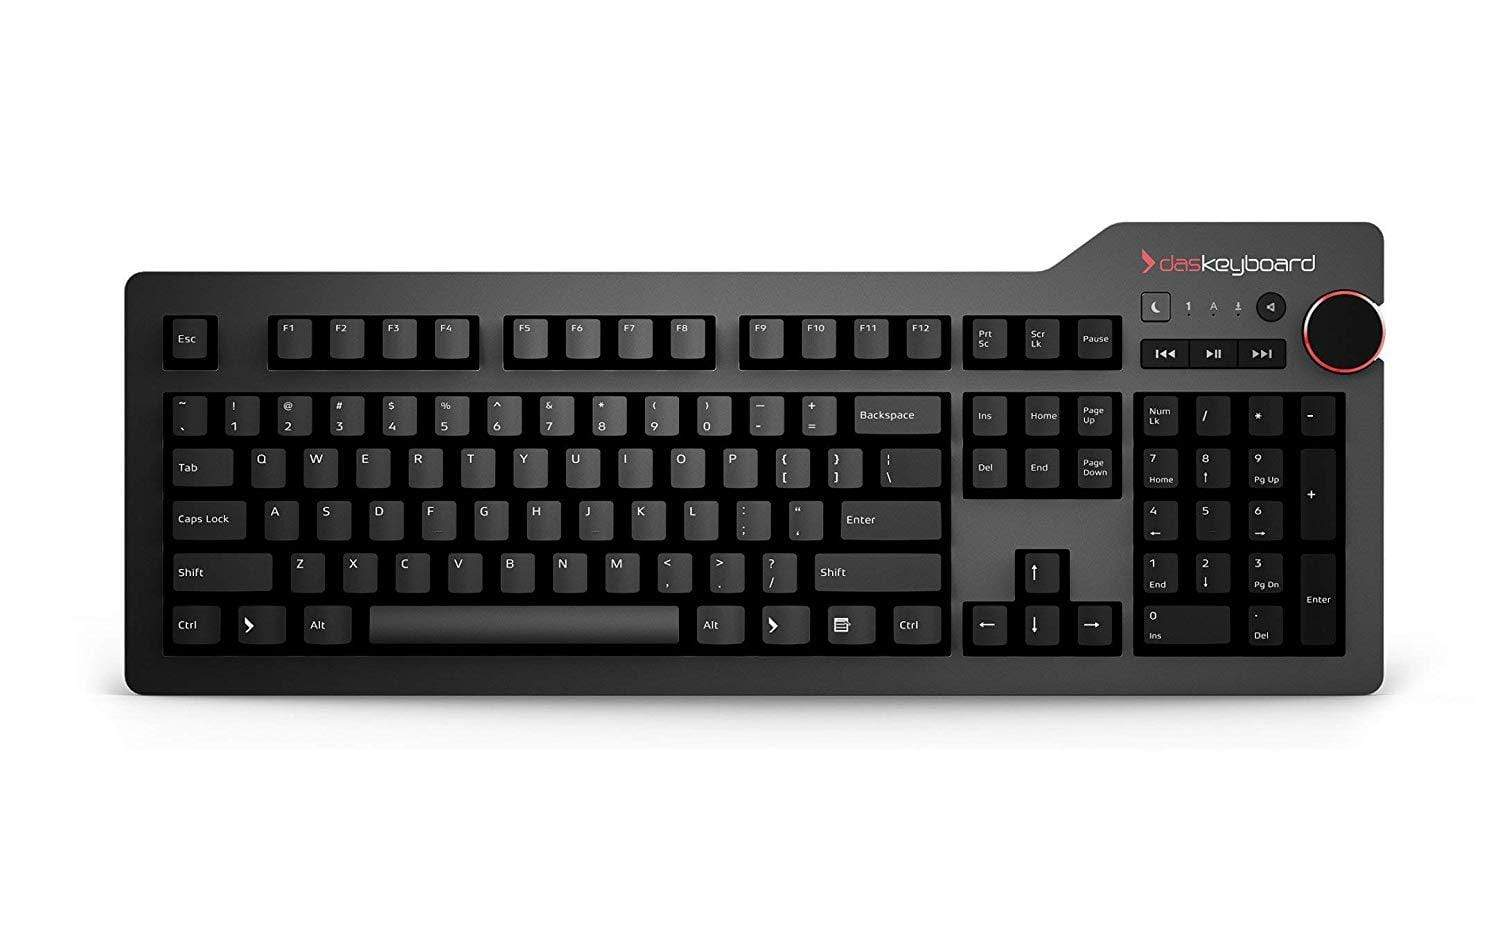 Das Keyboard Keyboard Das Keyboard 4 Professional Cherry MX Brown Mechanical Keyboard - Soft Tactile